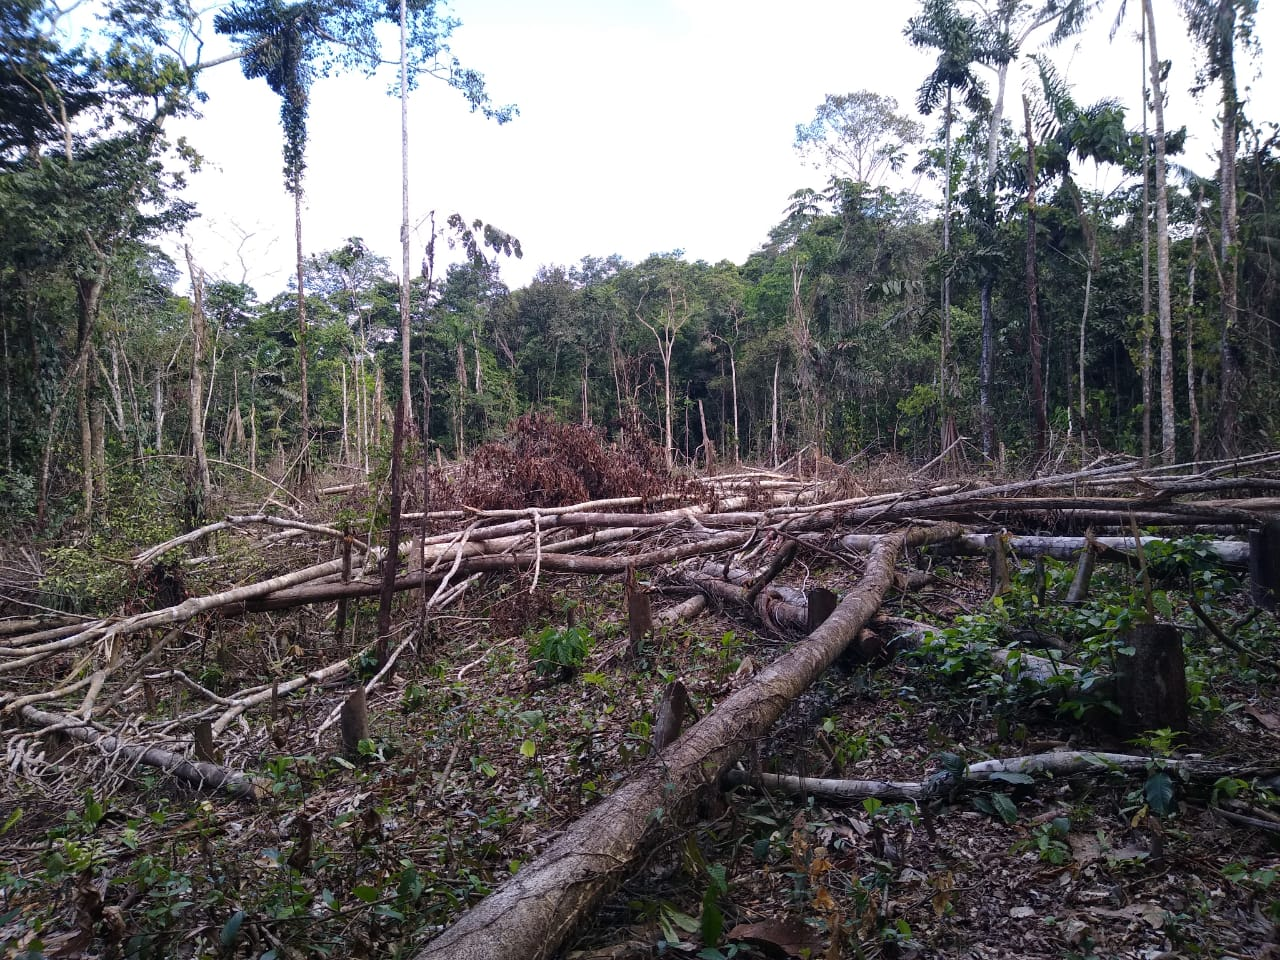 Indigenous leaders of Santa Martha estimate that some 600 hectares of primary forest had been destroyed as of late 2020. Photo by members of the community of Santa Martha.